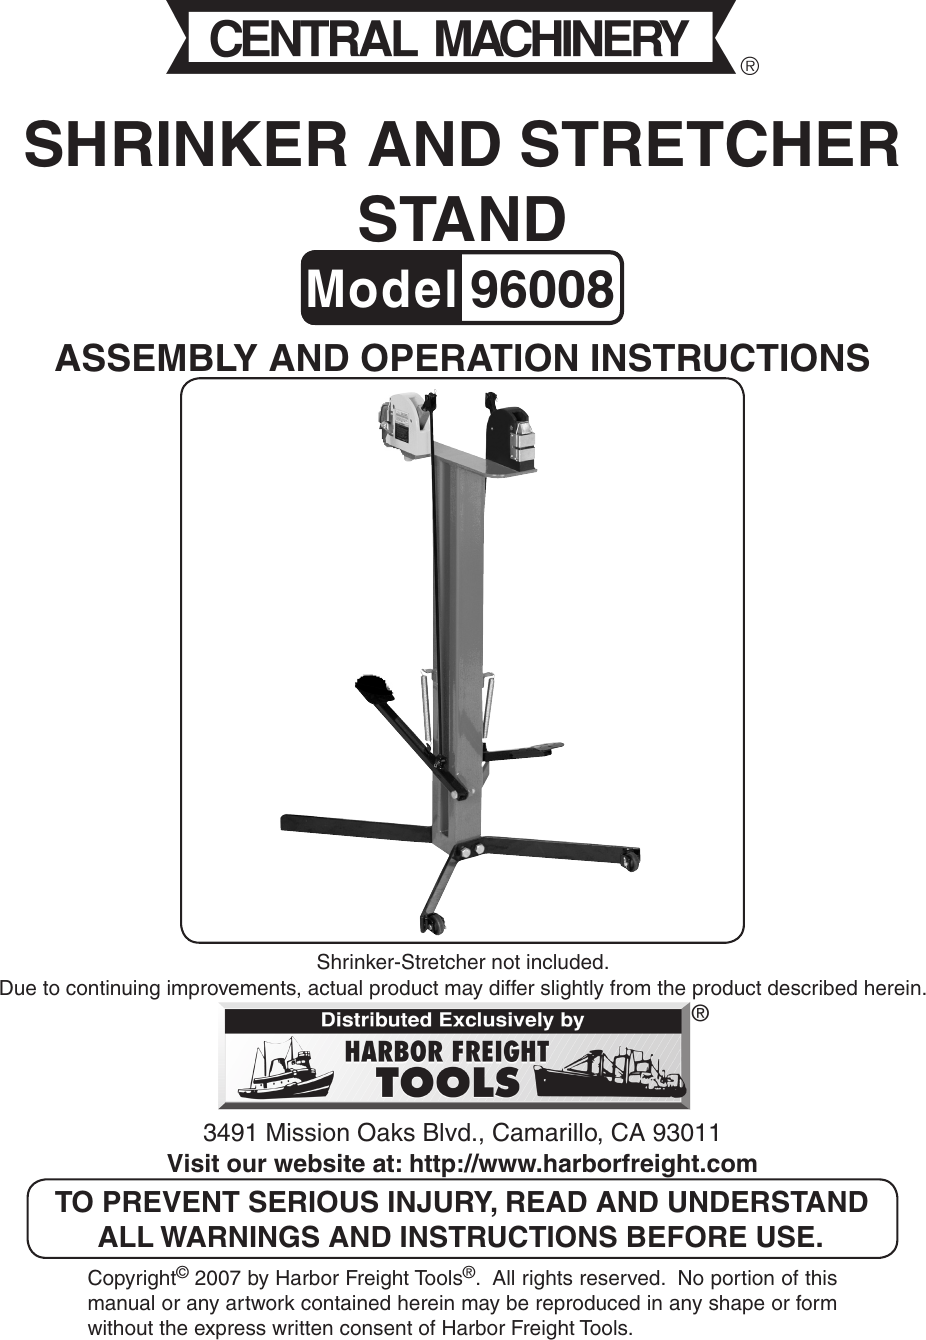 Harbor Freight Stand For Shrinker And Stretcher Machines Product Manual